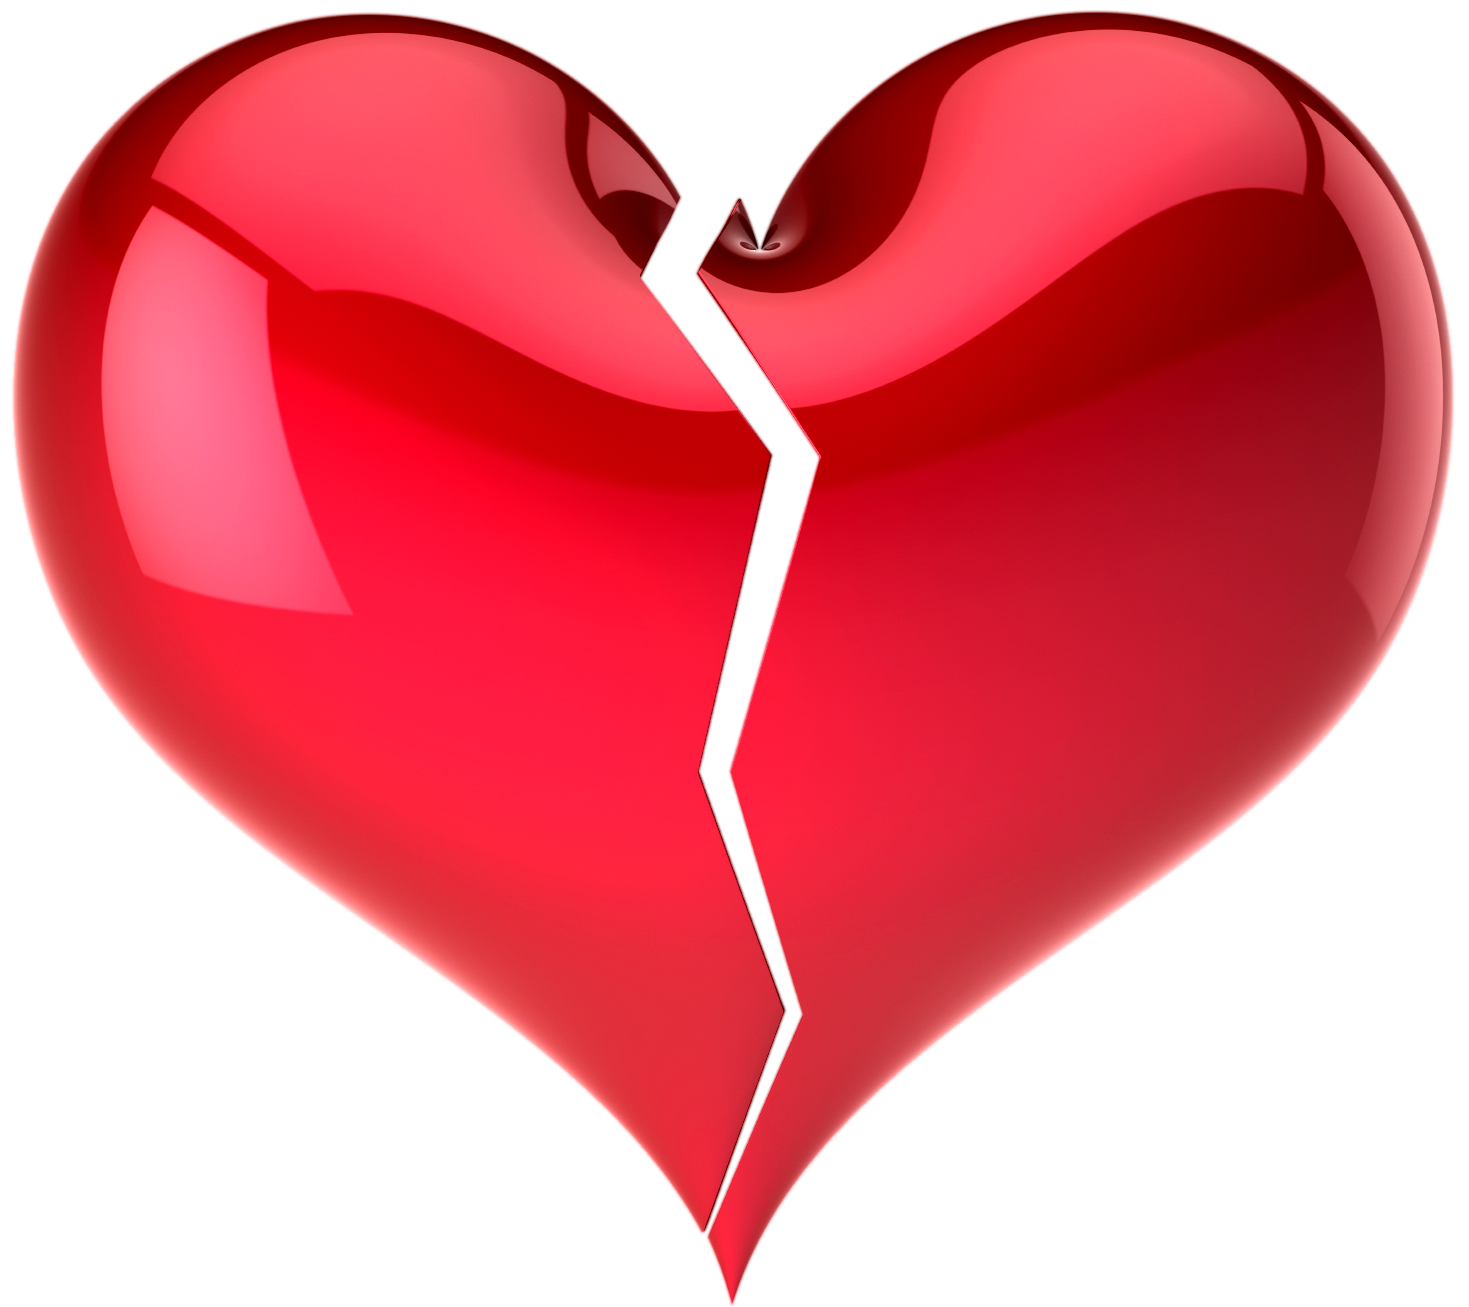 Heart images png. Broken transparent pictures free